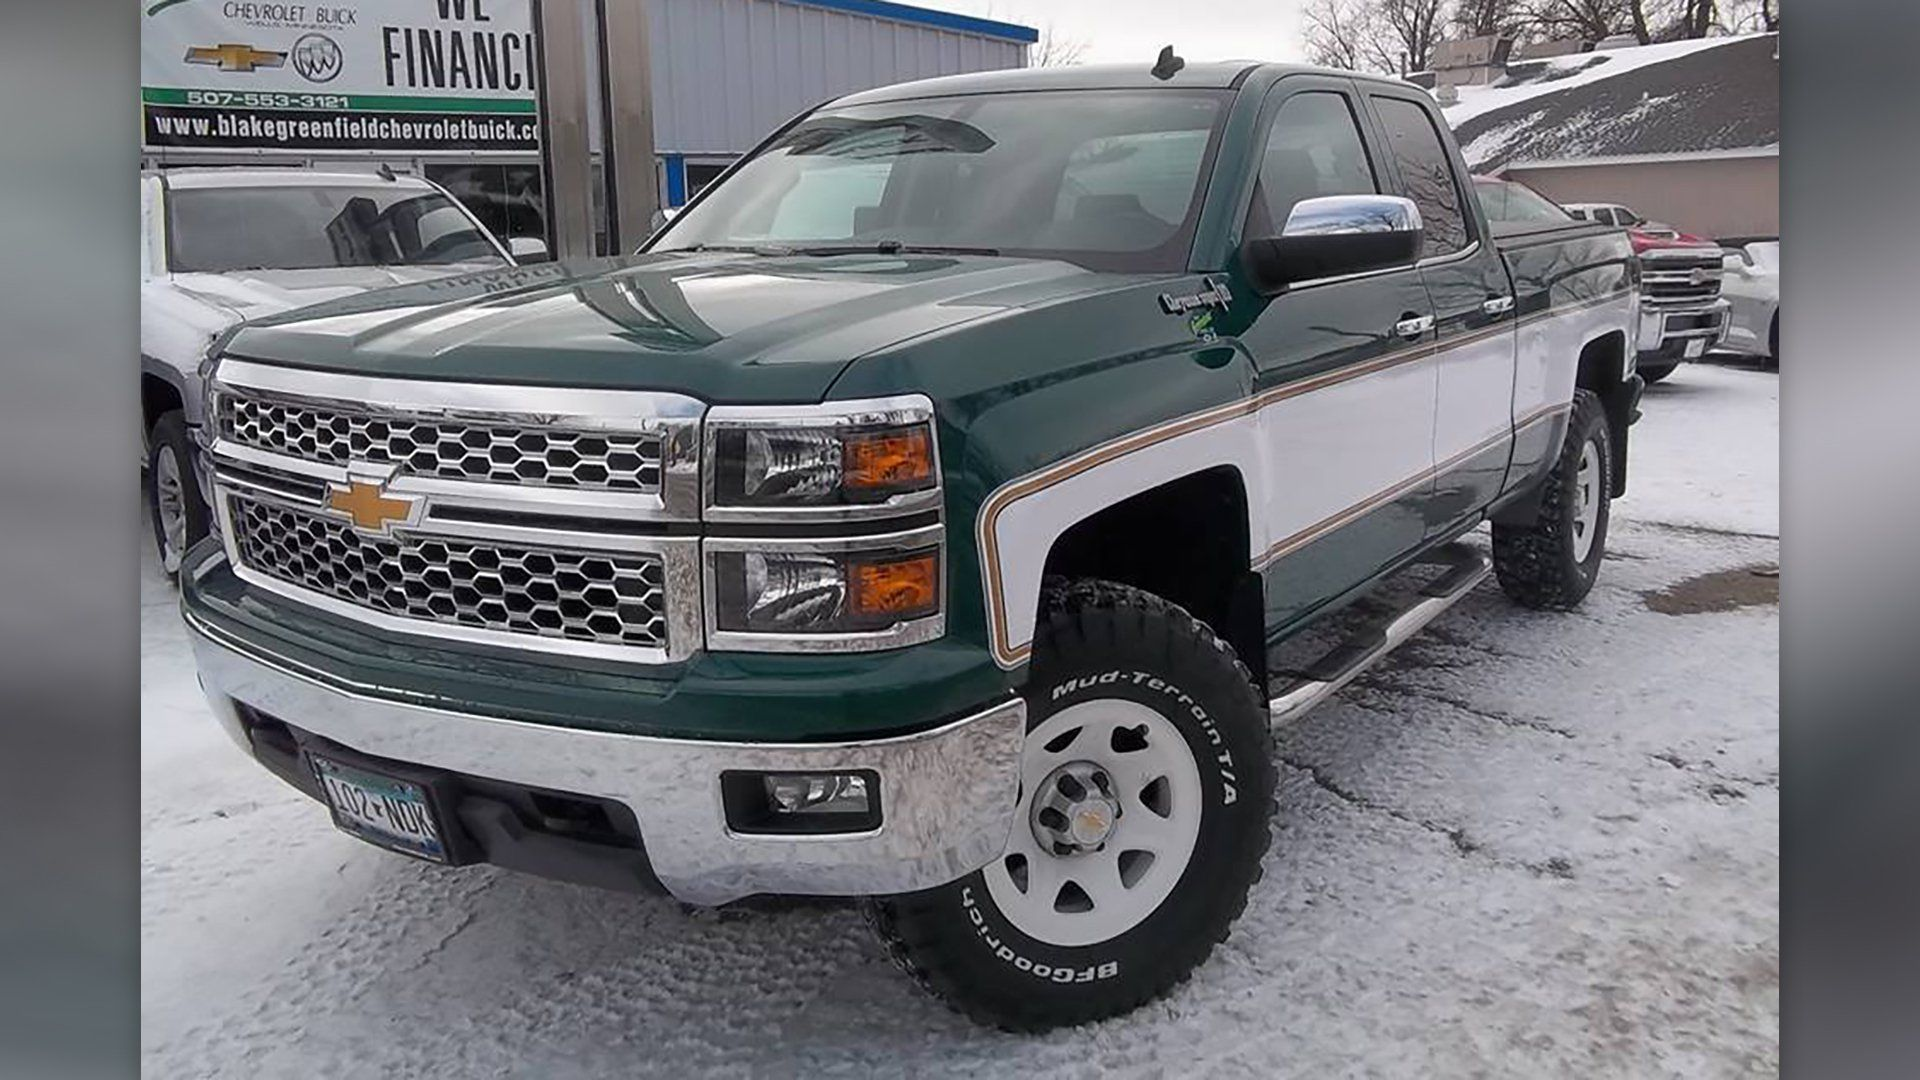 edition rhequipmentworldcom alleged chevrolet trucks randicecchine pickups suit chevy duramax emissions midnight gallery for slapped gm autoblogrhautoblogcom com with sale photo reaper classaction